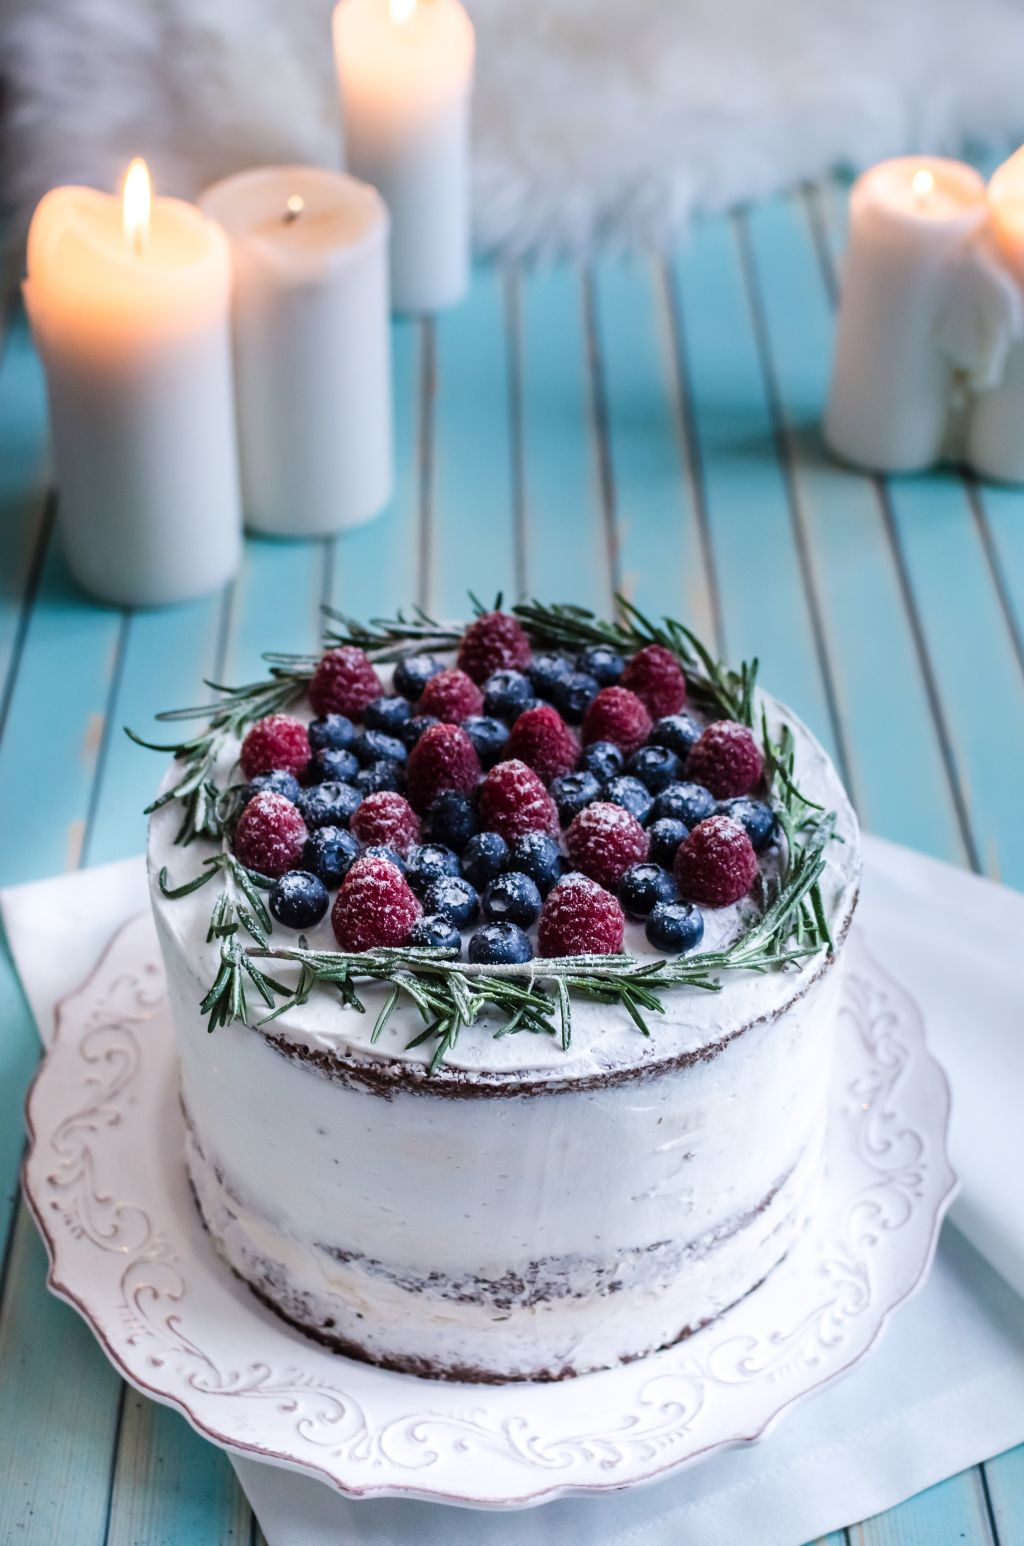 Homemade chocolate nutty naked birthday cake with white cream on each side, decorated with raspberries, blueberries, rosemary on serving plate with white napkin over wooden turquoise table, candles on the background, selective focus